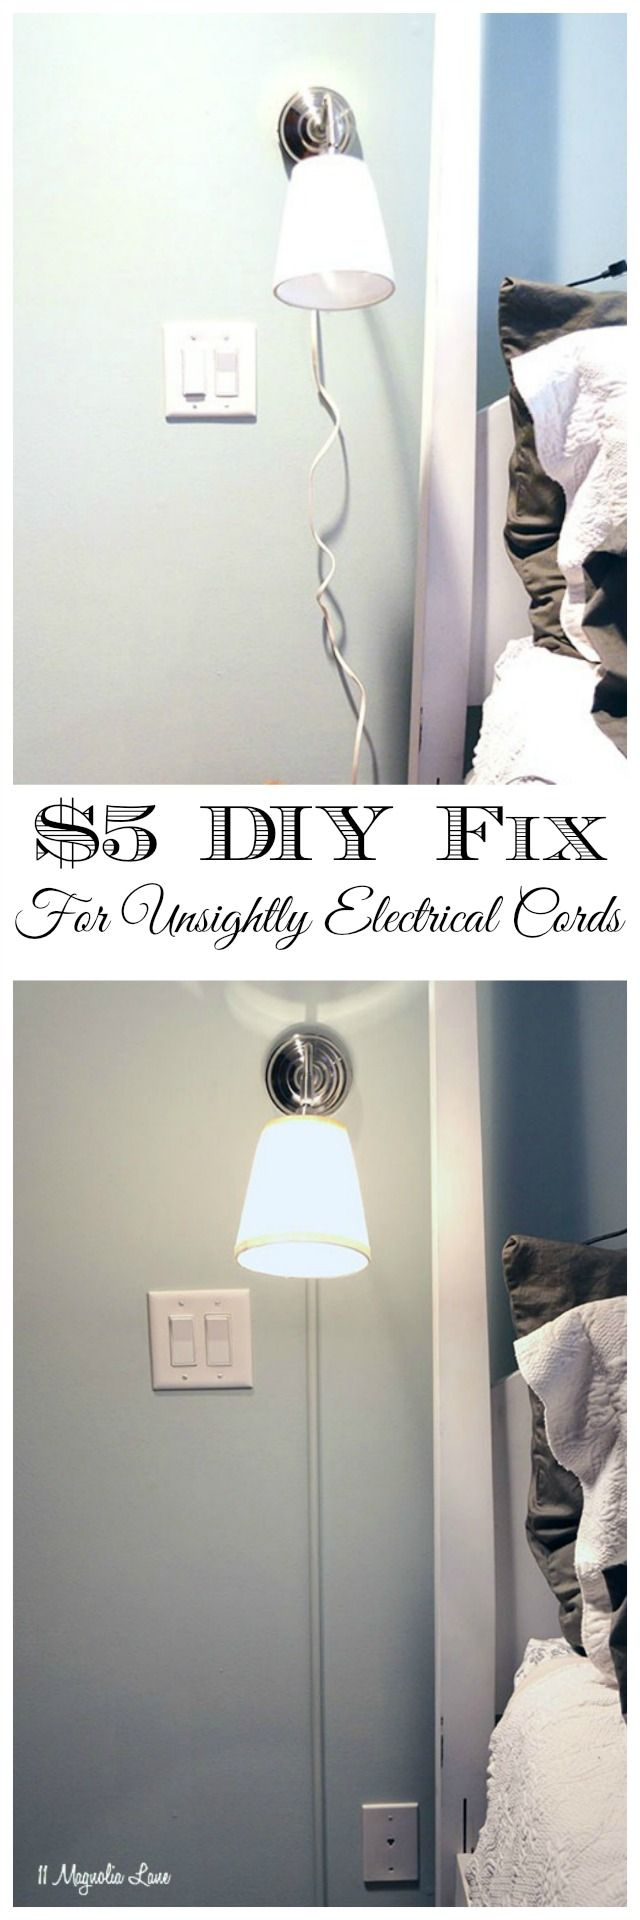 How To Hide Electrical Or Cable Cords 11 Magnolia Lane Hide Electrical Cords Hide Cords On Wall Hide Cables